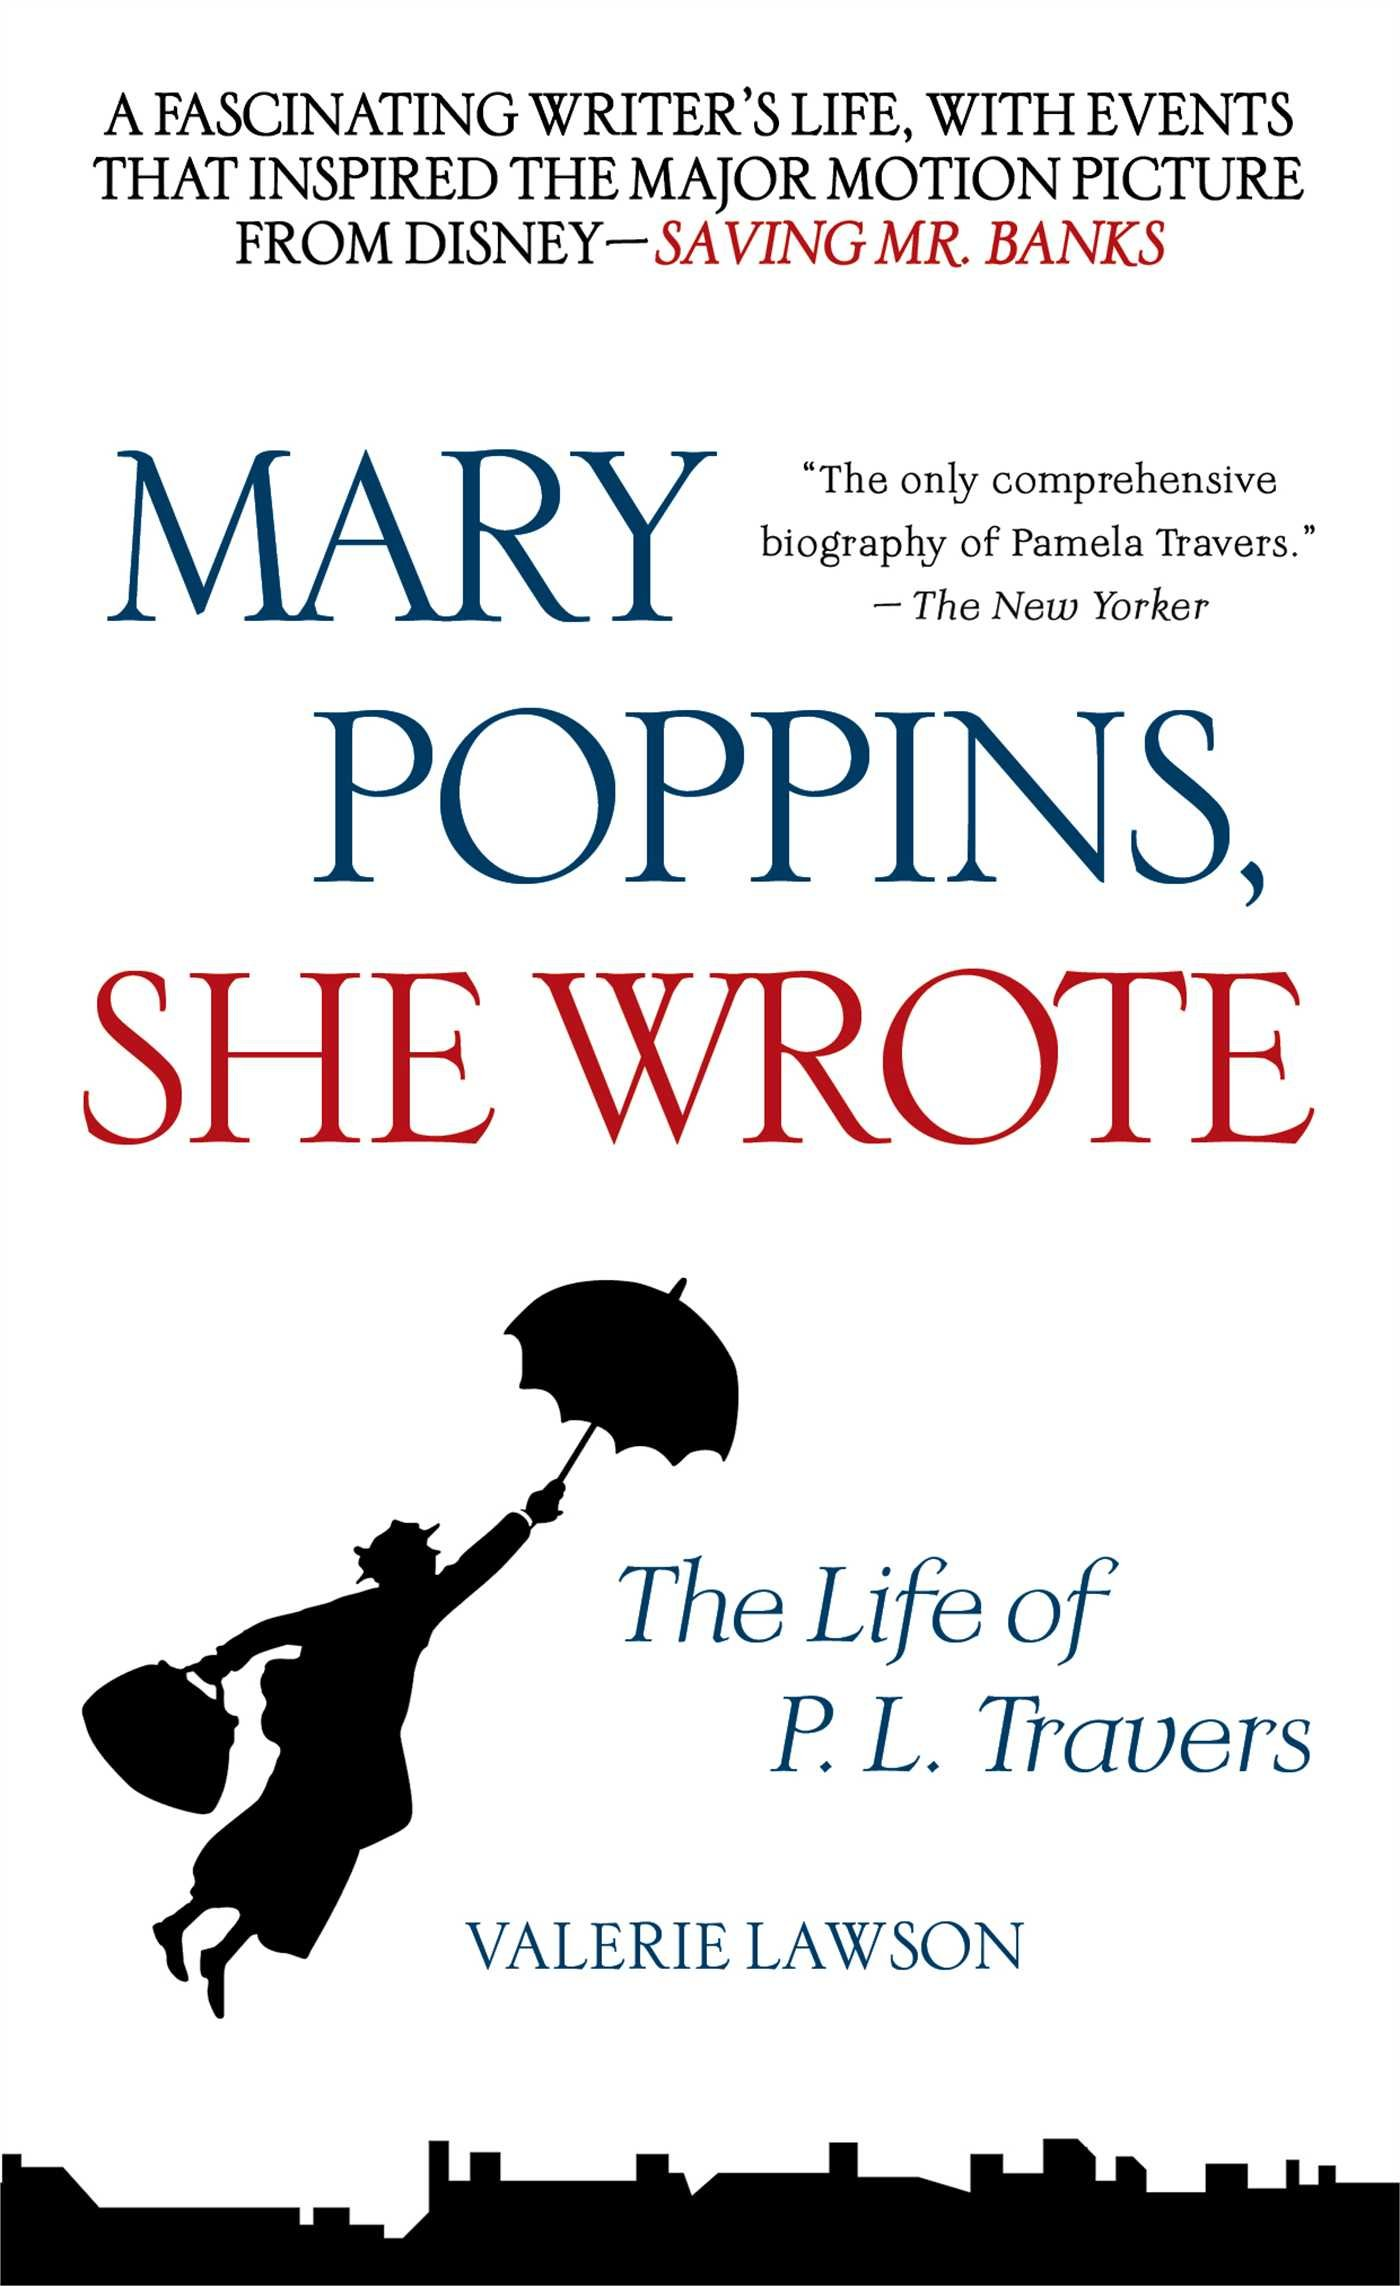 Mary Poppins, She Wrote: The Life Of P L Travers: Amazon: Valerie  Lawson: 9781476764733: Books